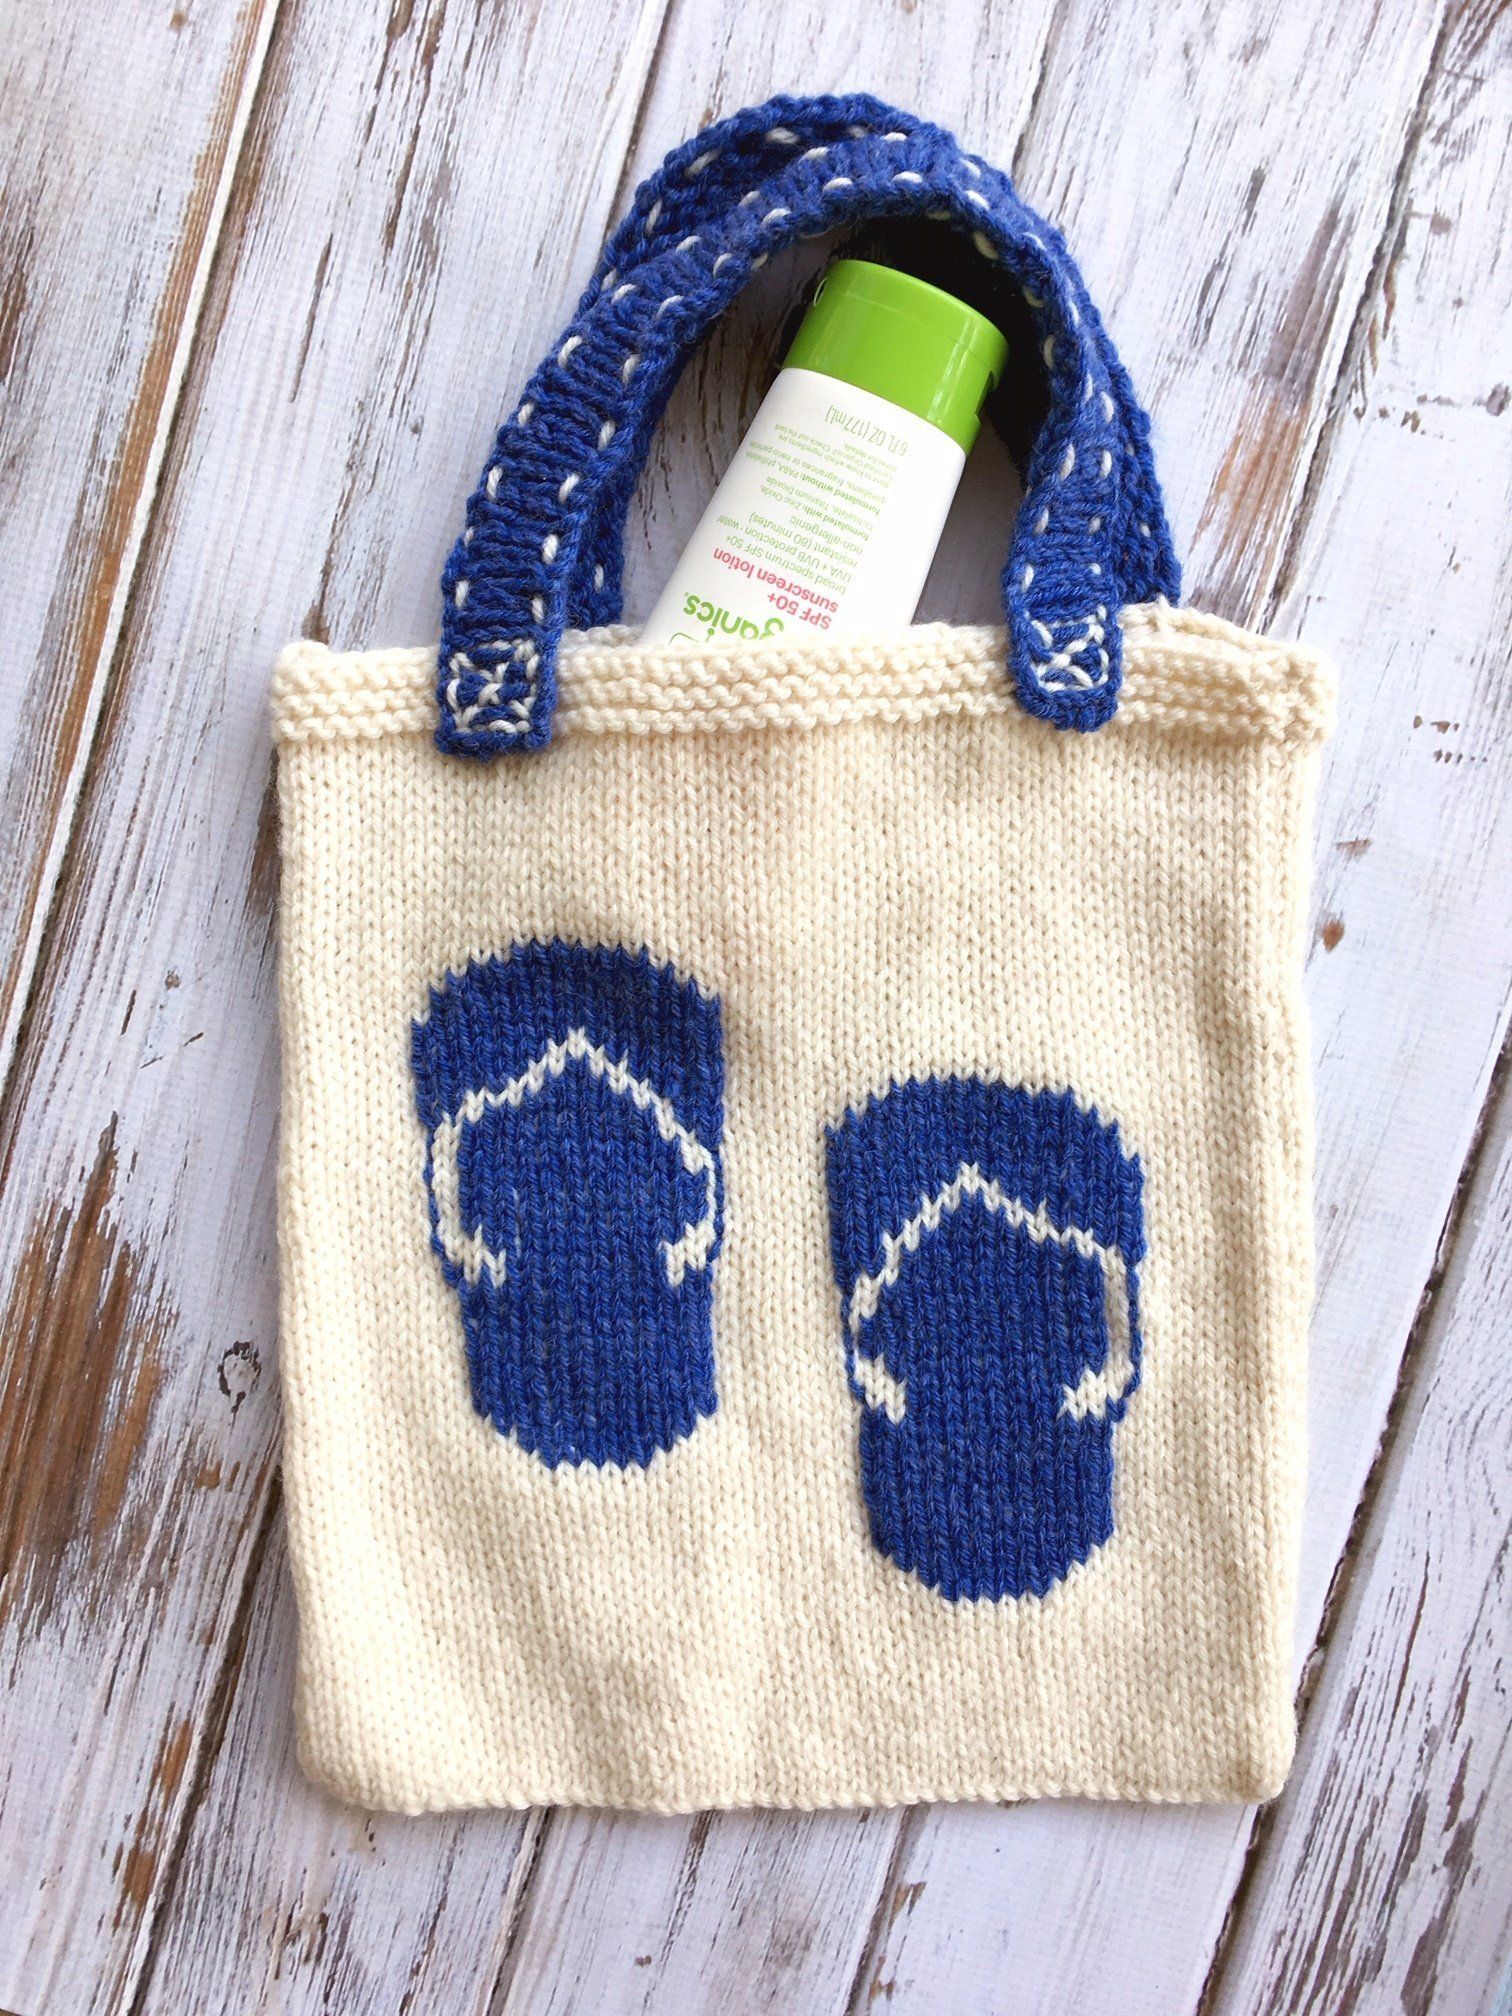 Learn to knit this flip flop tote